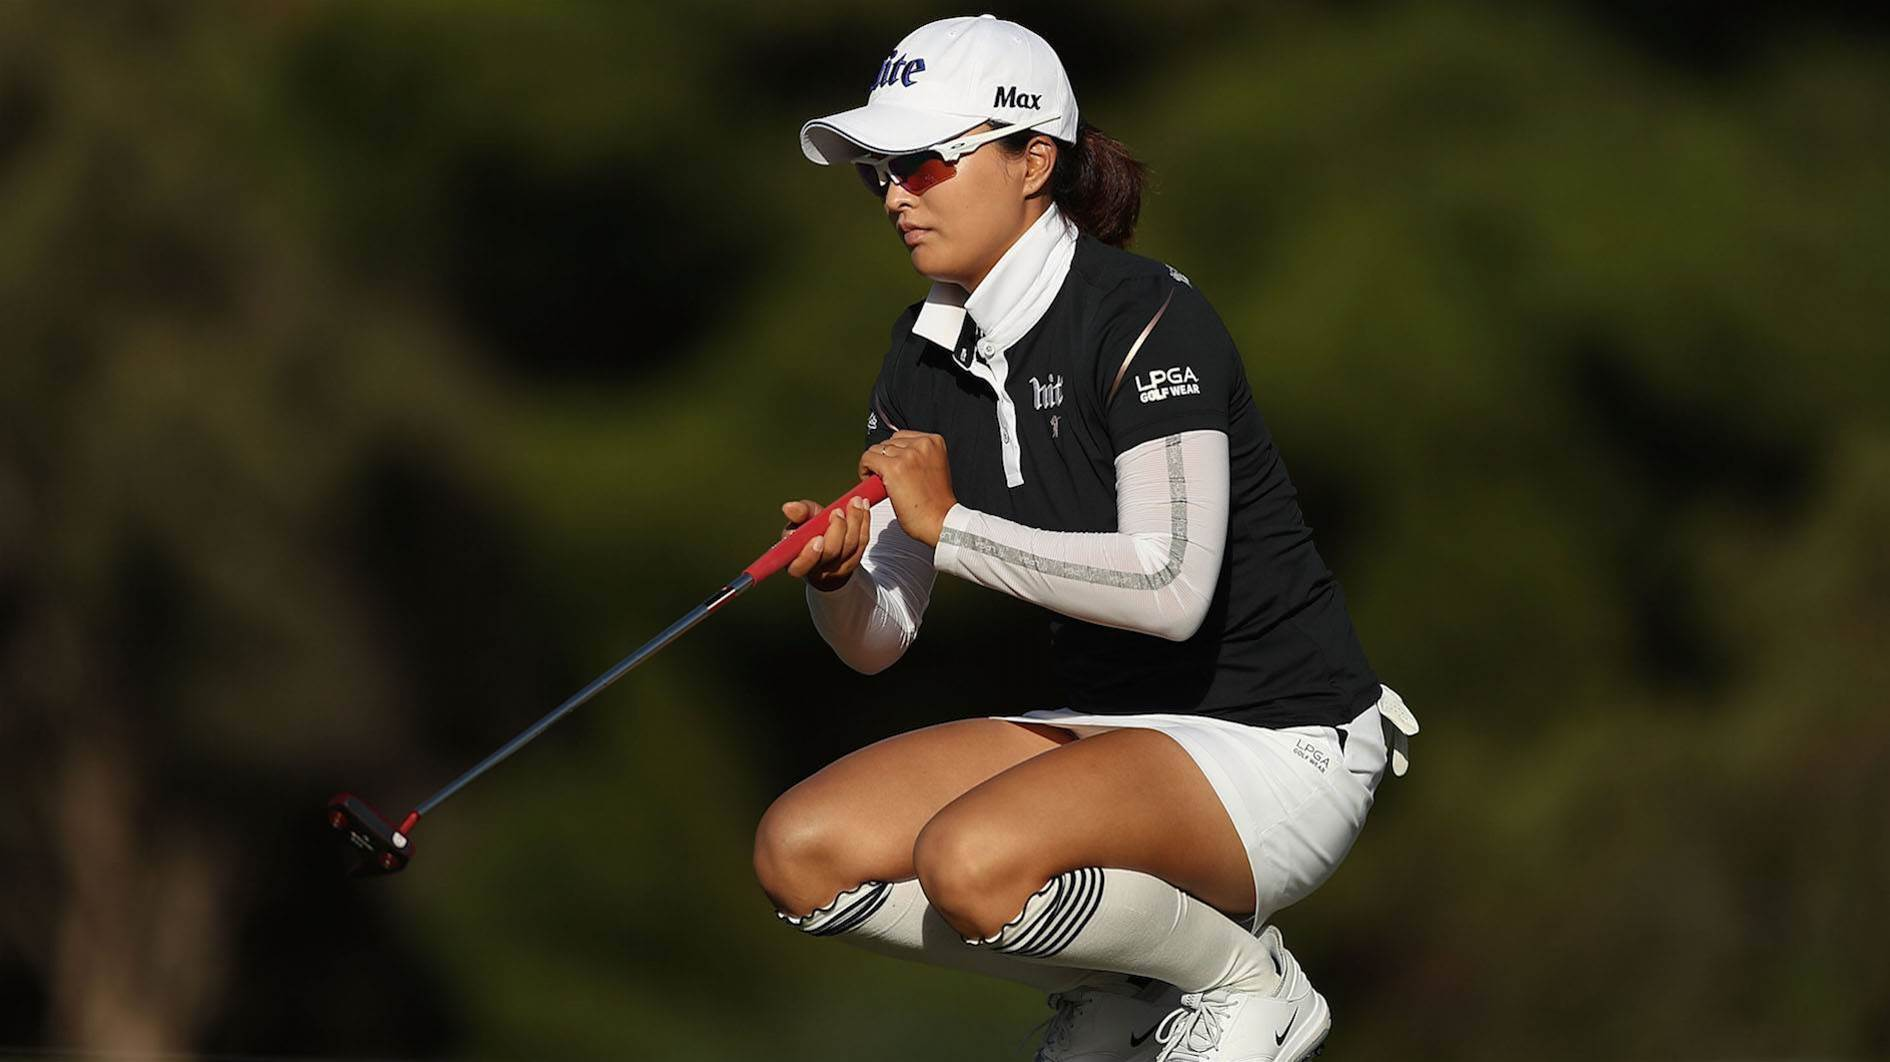 WOMEN'S OPEN: South Koreans loom large as Aussies falter